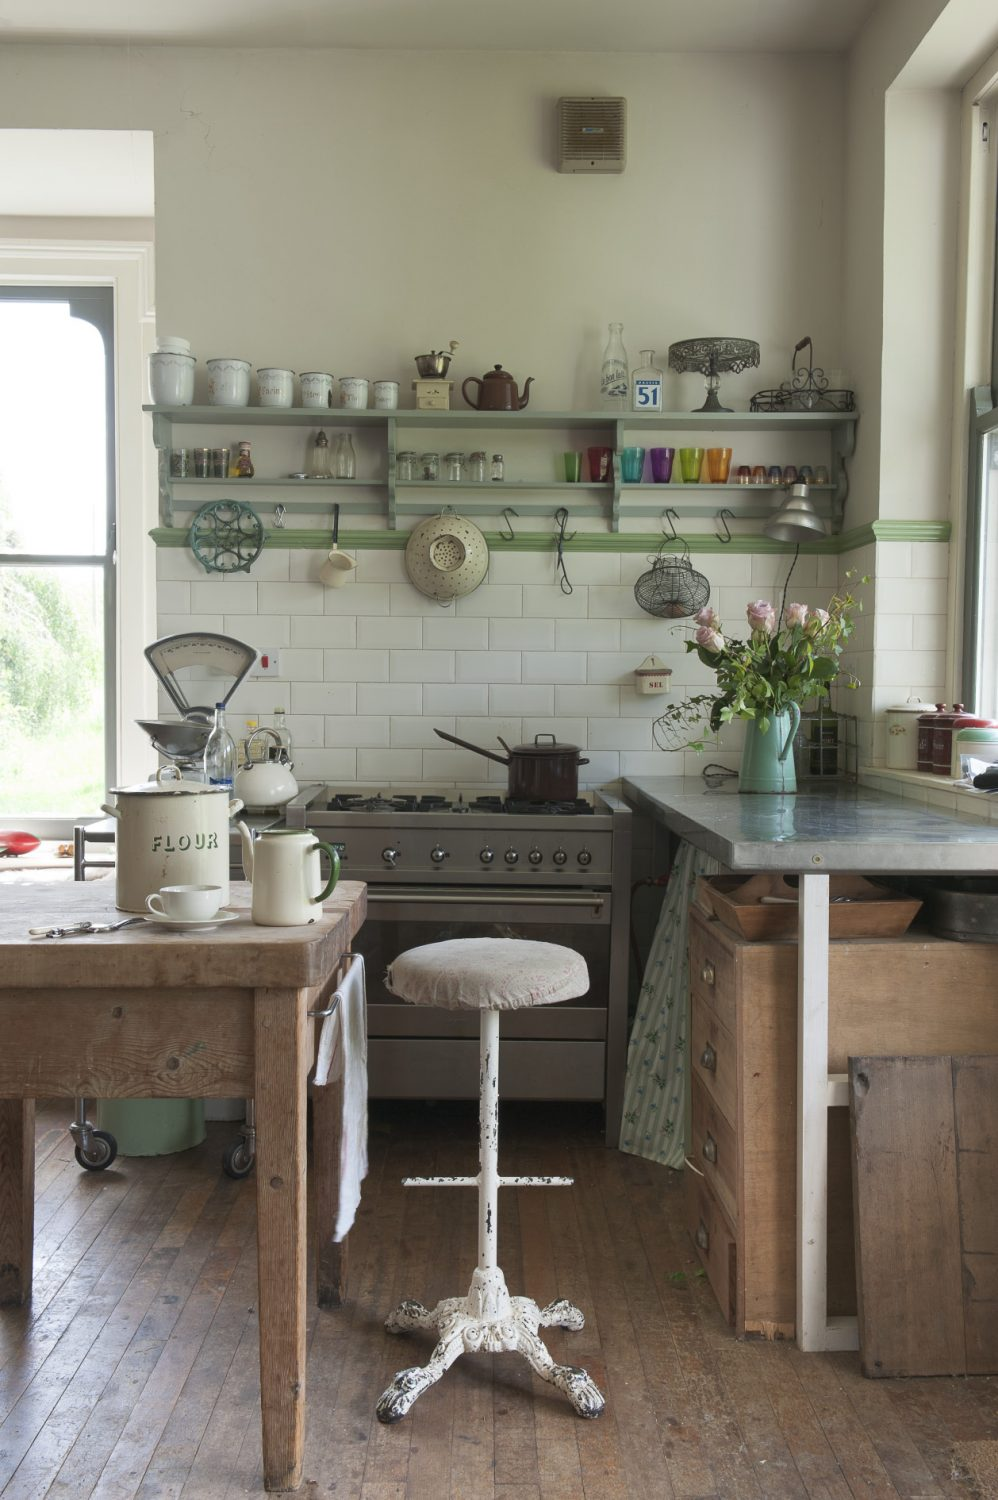 The kitchen is equipped with an assortment of tables and trolleys with under-sink and work surface spaces covered with curtains of cheerful, printed fabrics